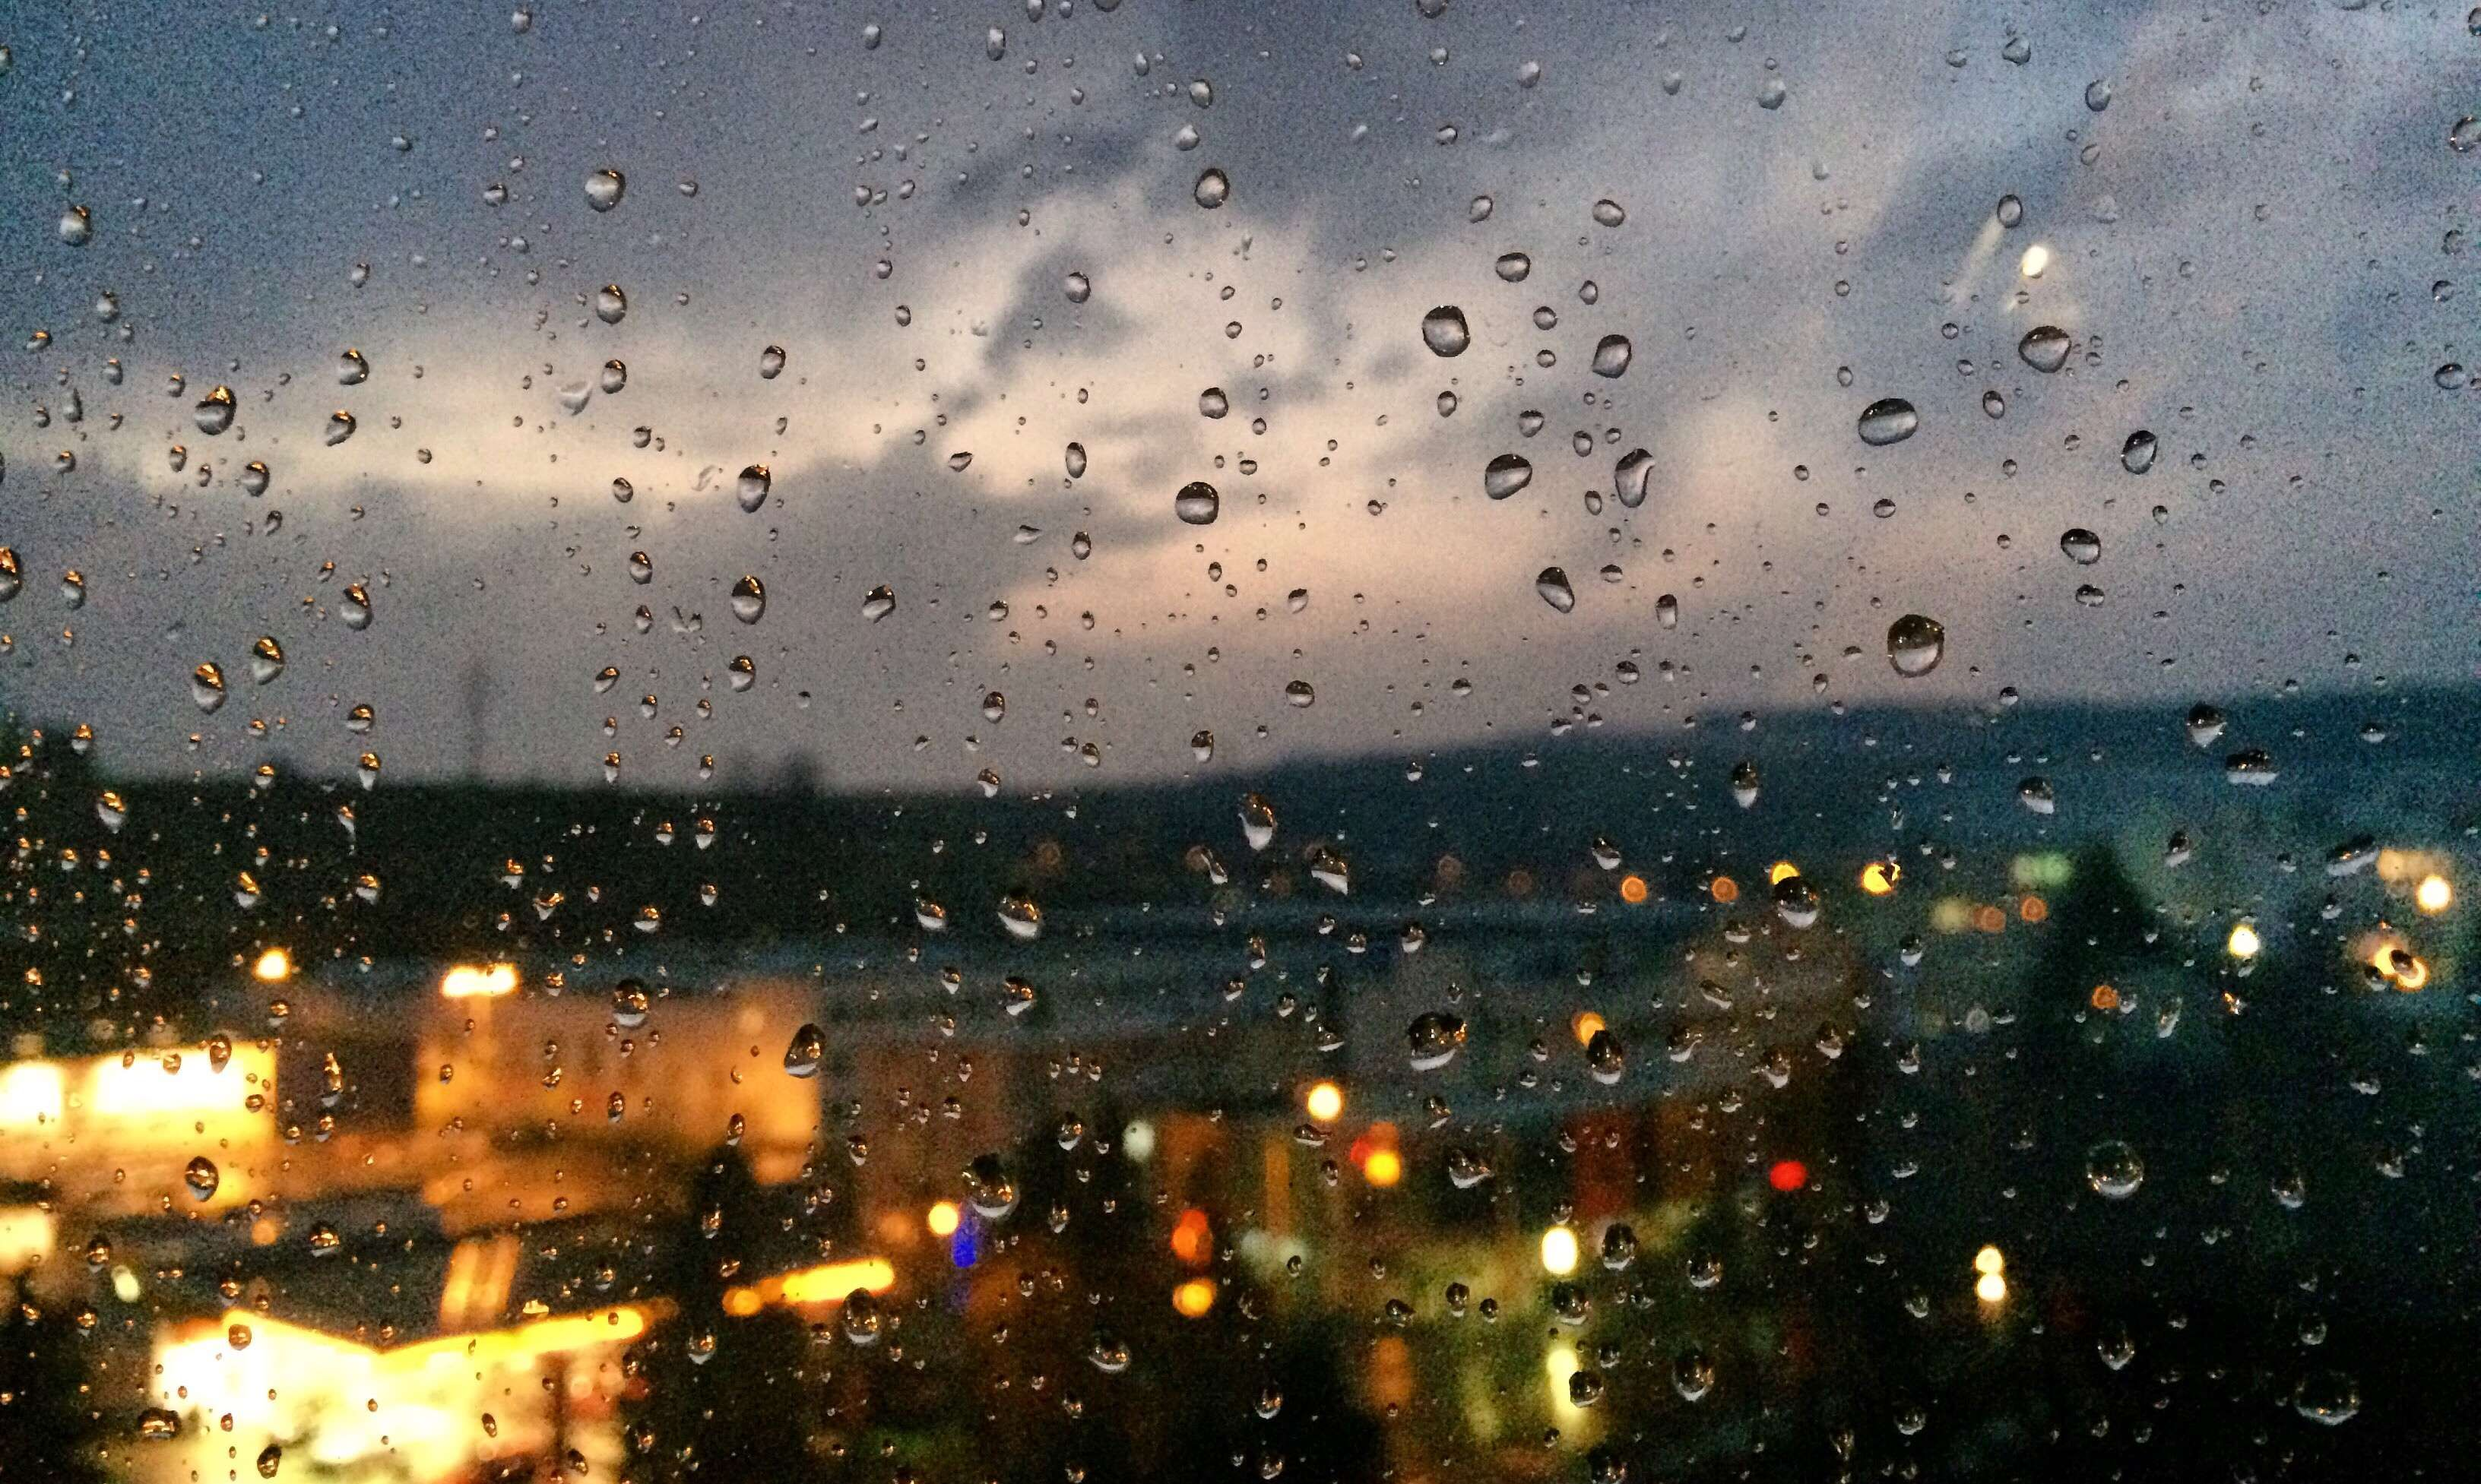 City Clouds Dark Day Lights Night Panorama Rain Rainy Sky Slovakia Slovensko View Weather Window Ville Nuit Nuit Fenetre